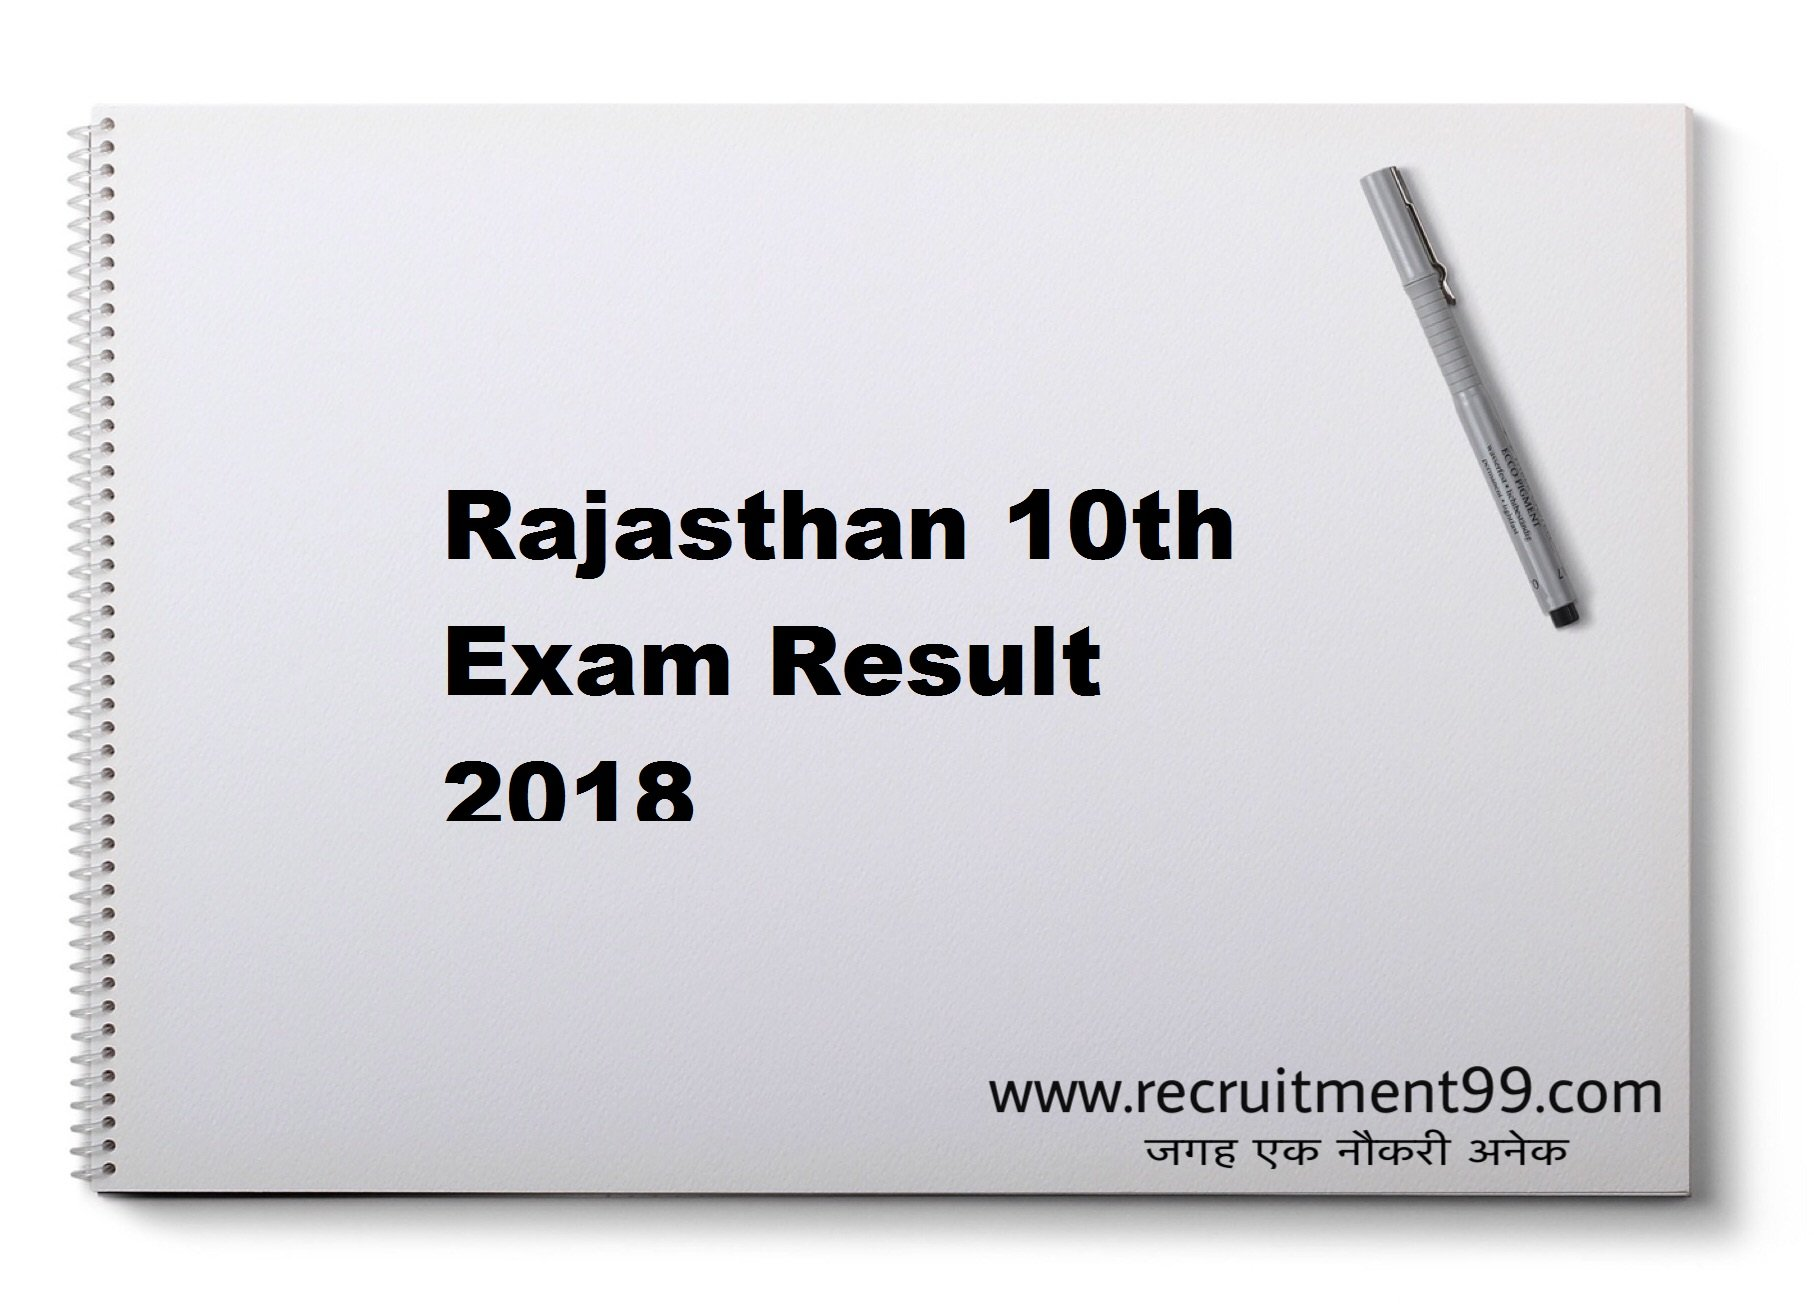 Rajasthan 10th Board Exam Result 2018